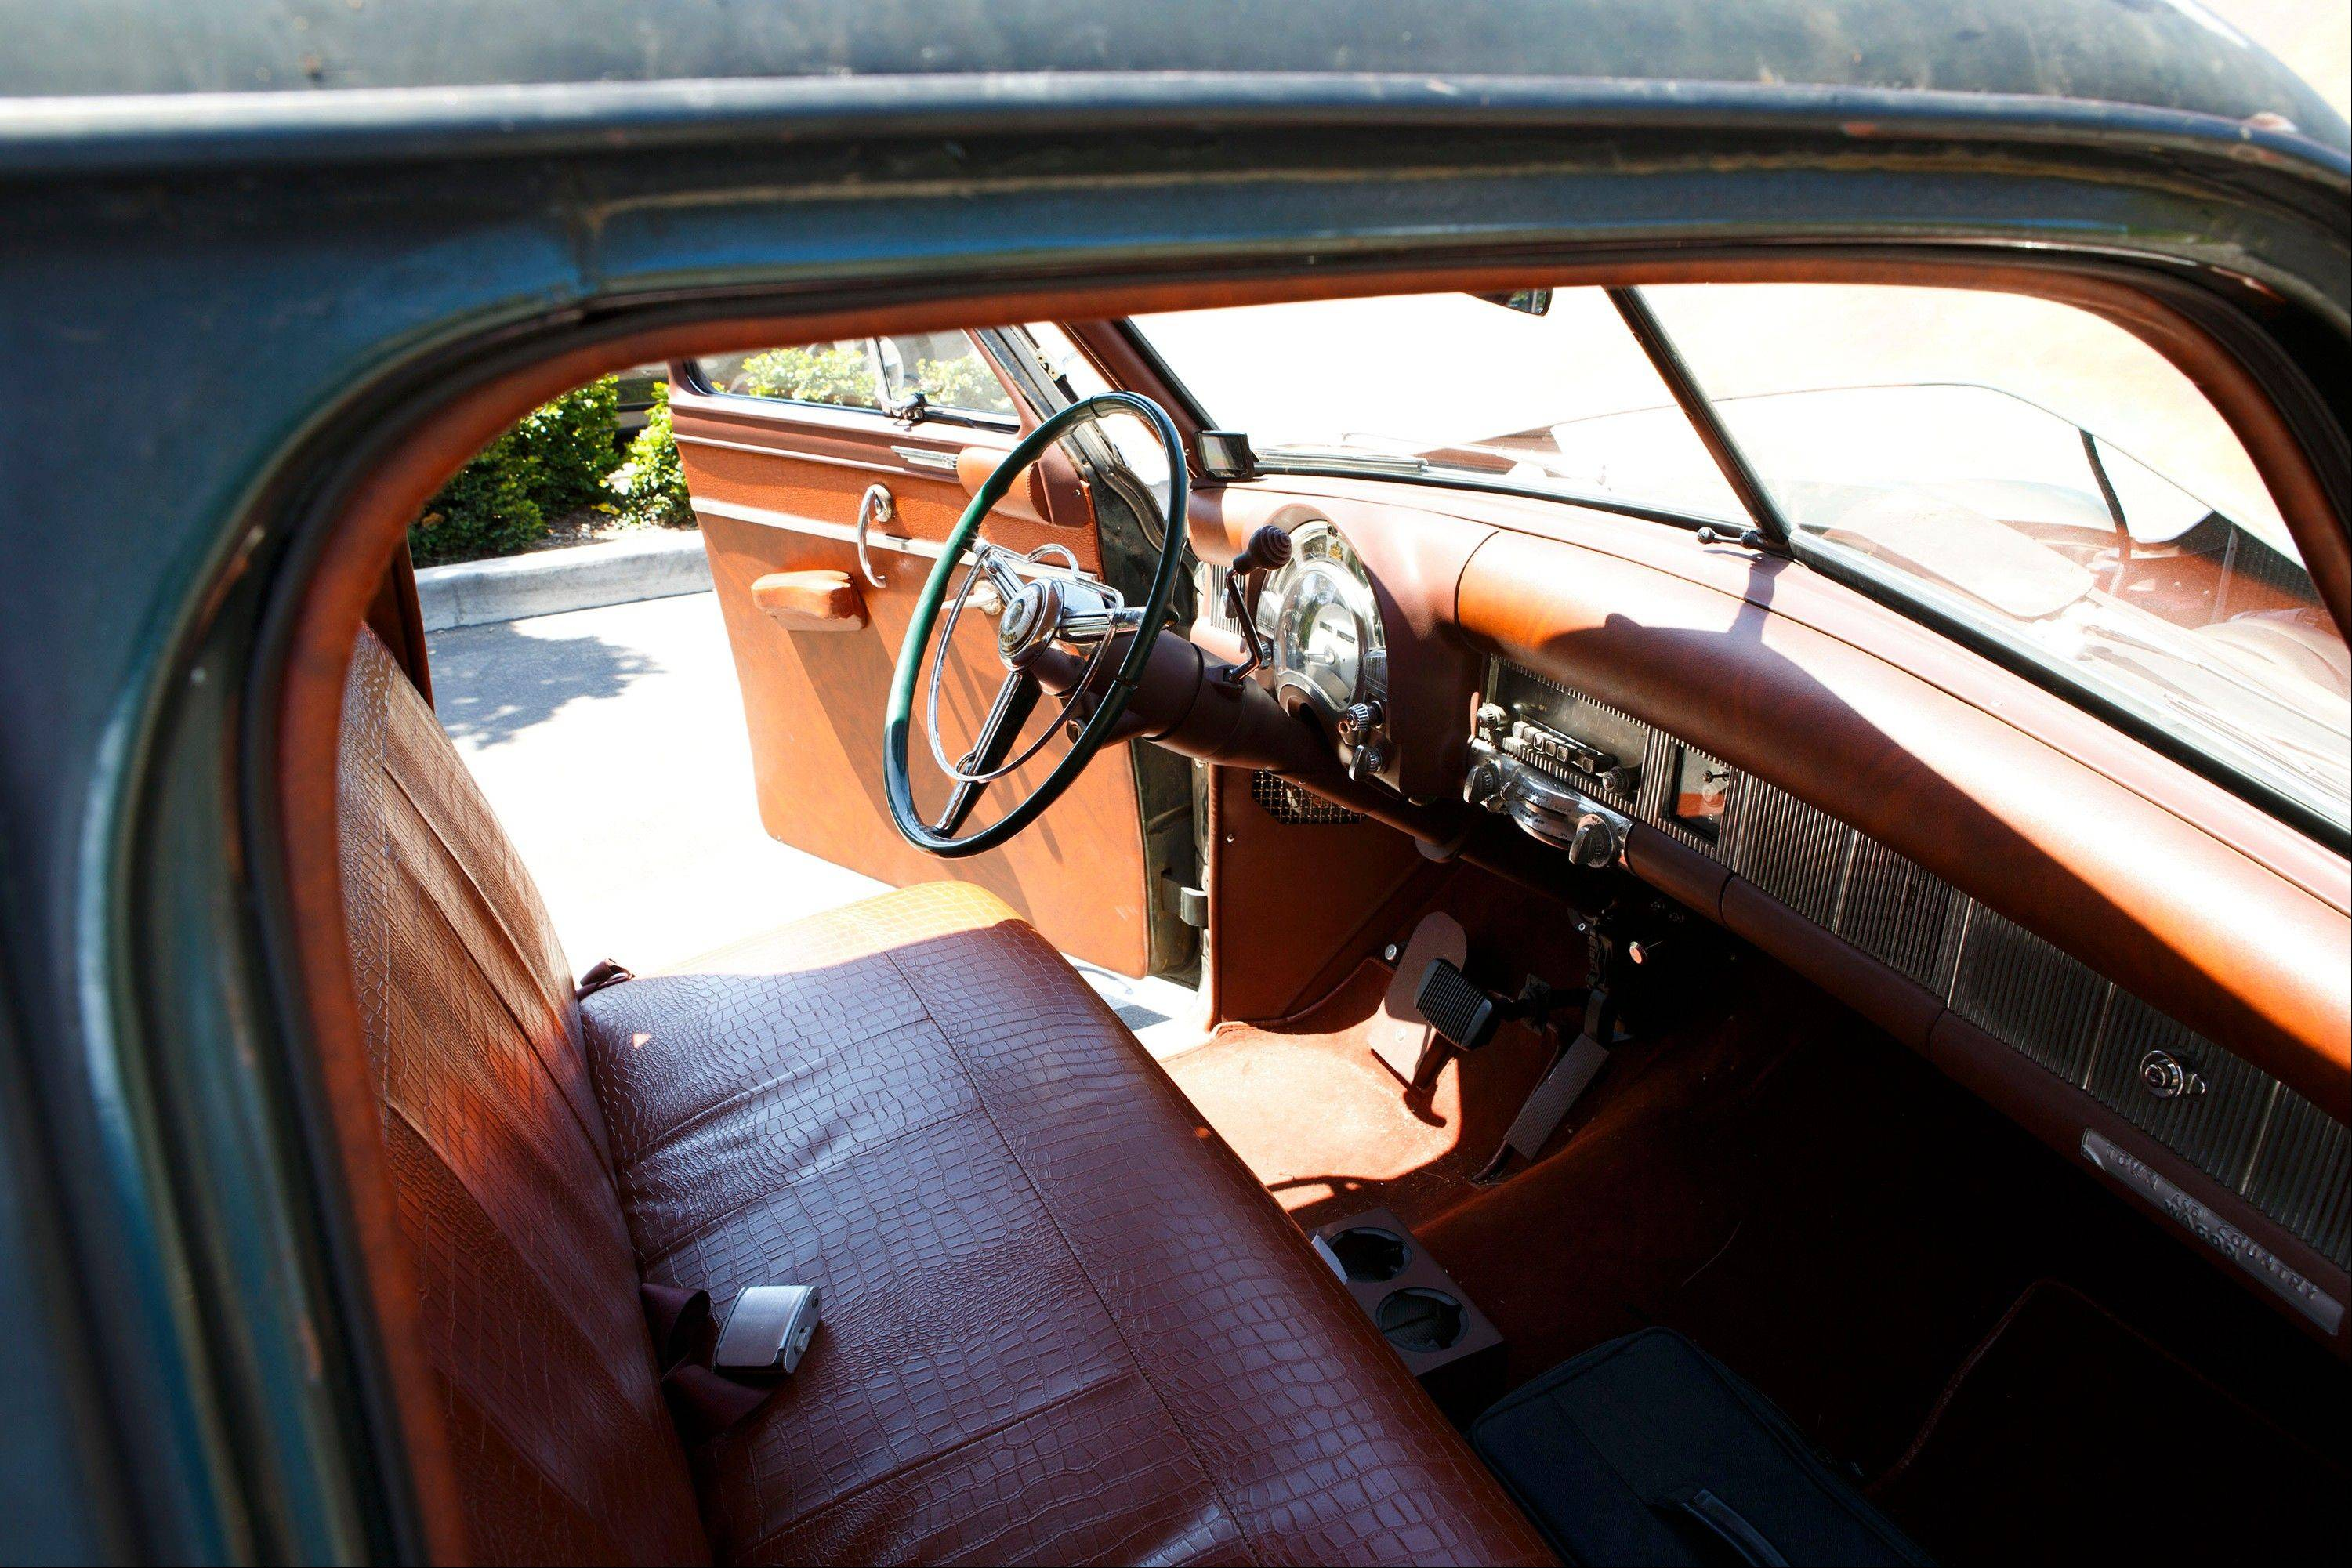 The original steering wheel and wood flooring of a 1952 Chrysler Town & Country wagon were used to create the custom vehicle with a front end off a DeSoto.